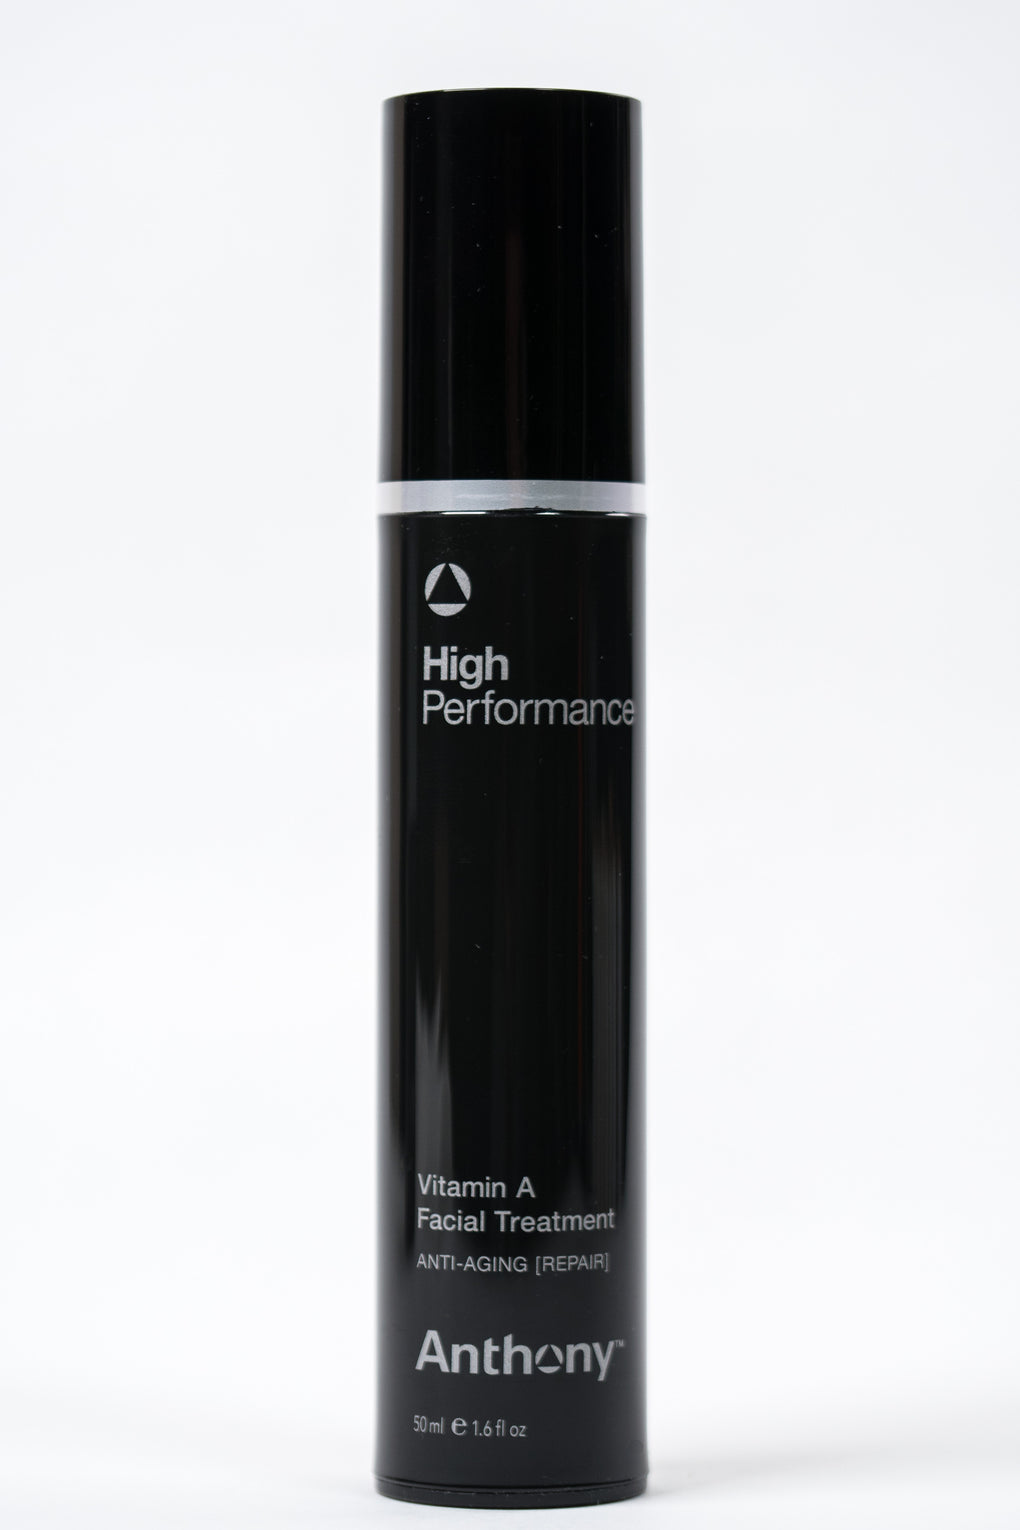 Anthony Vitamin A Serum at Consigliere